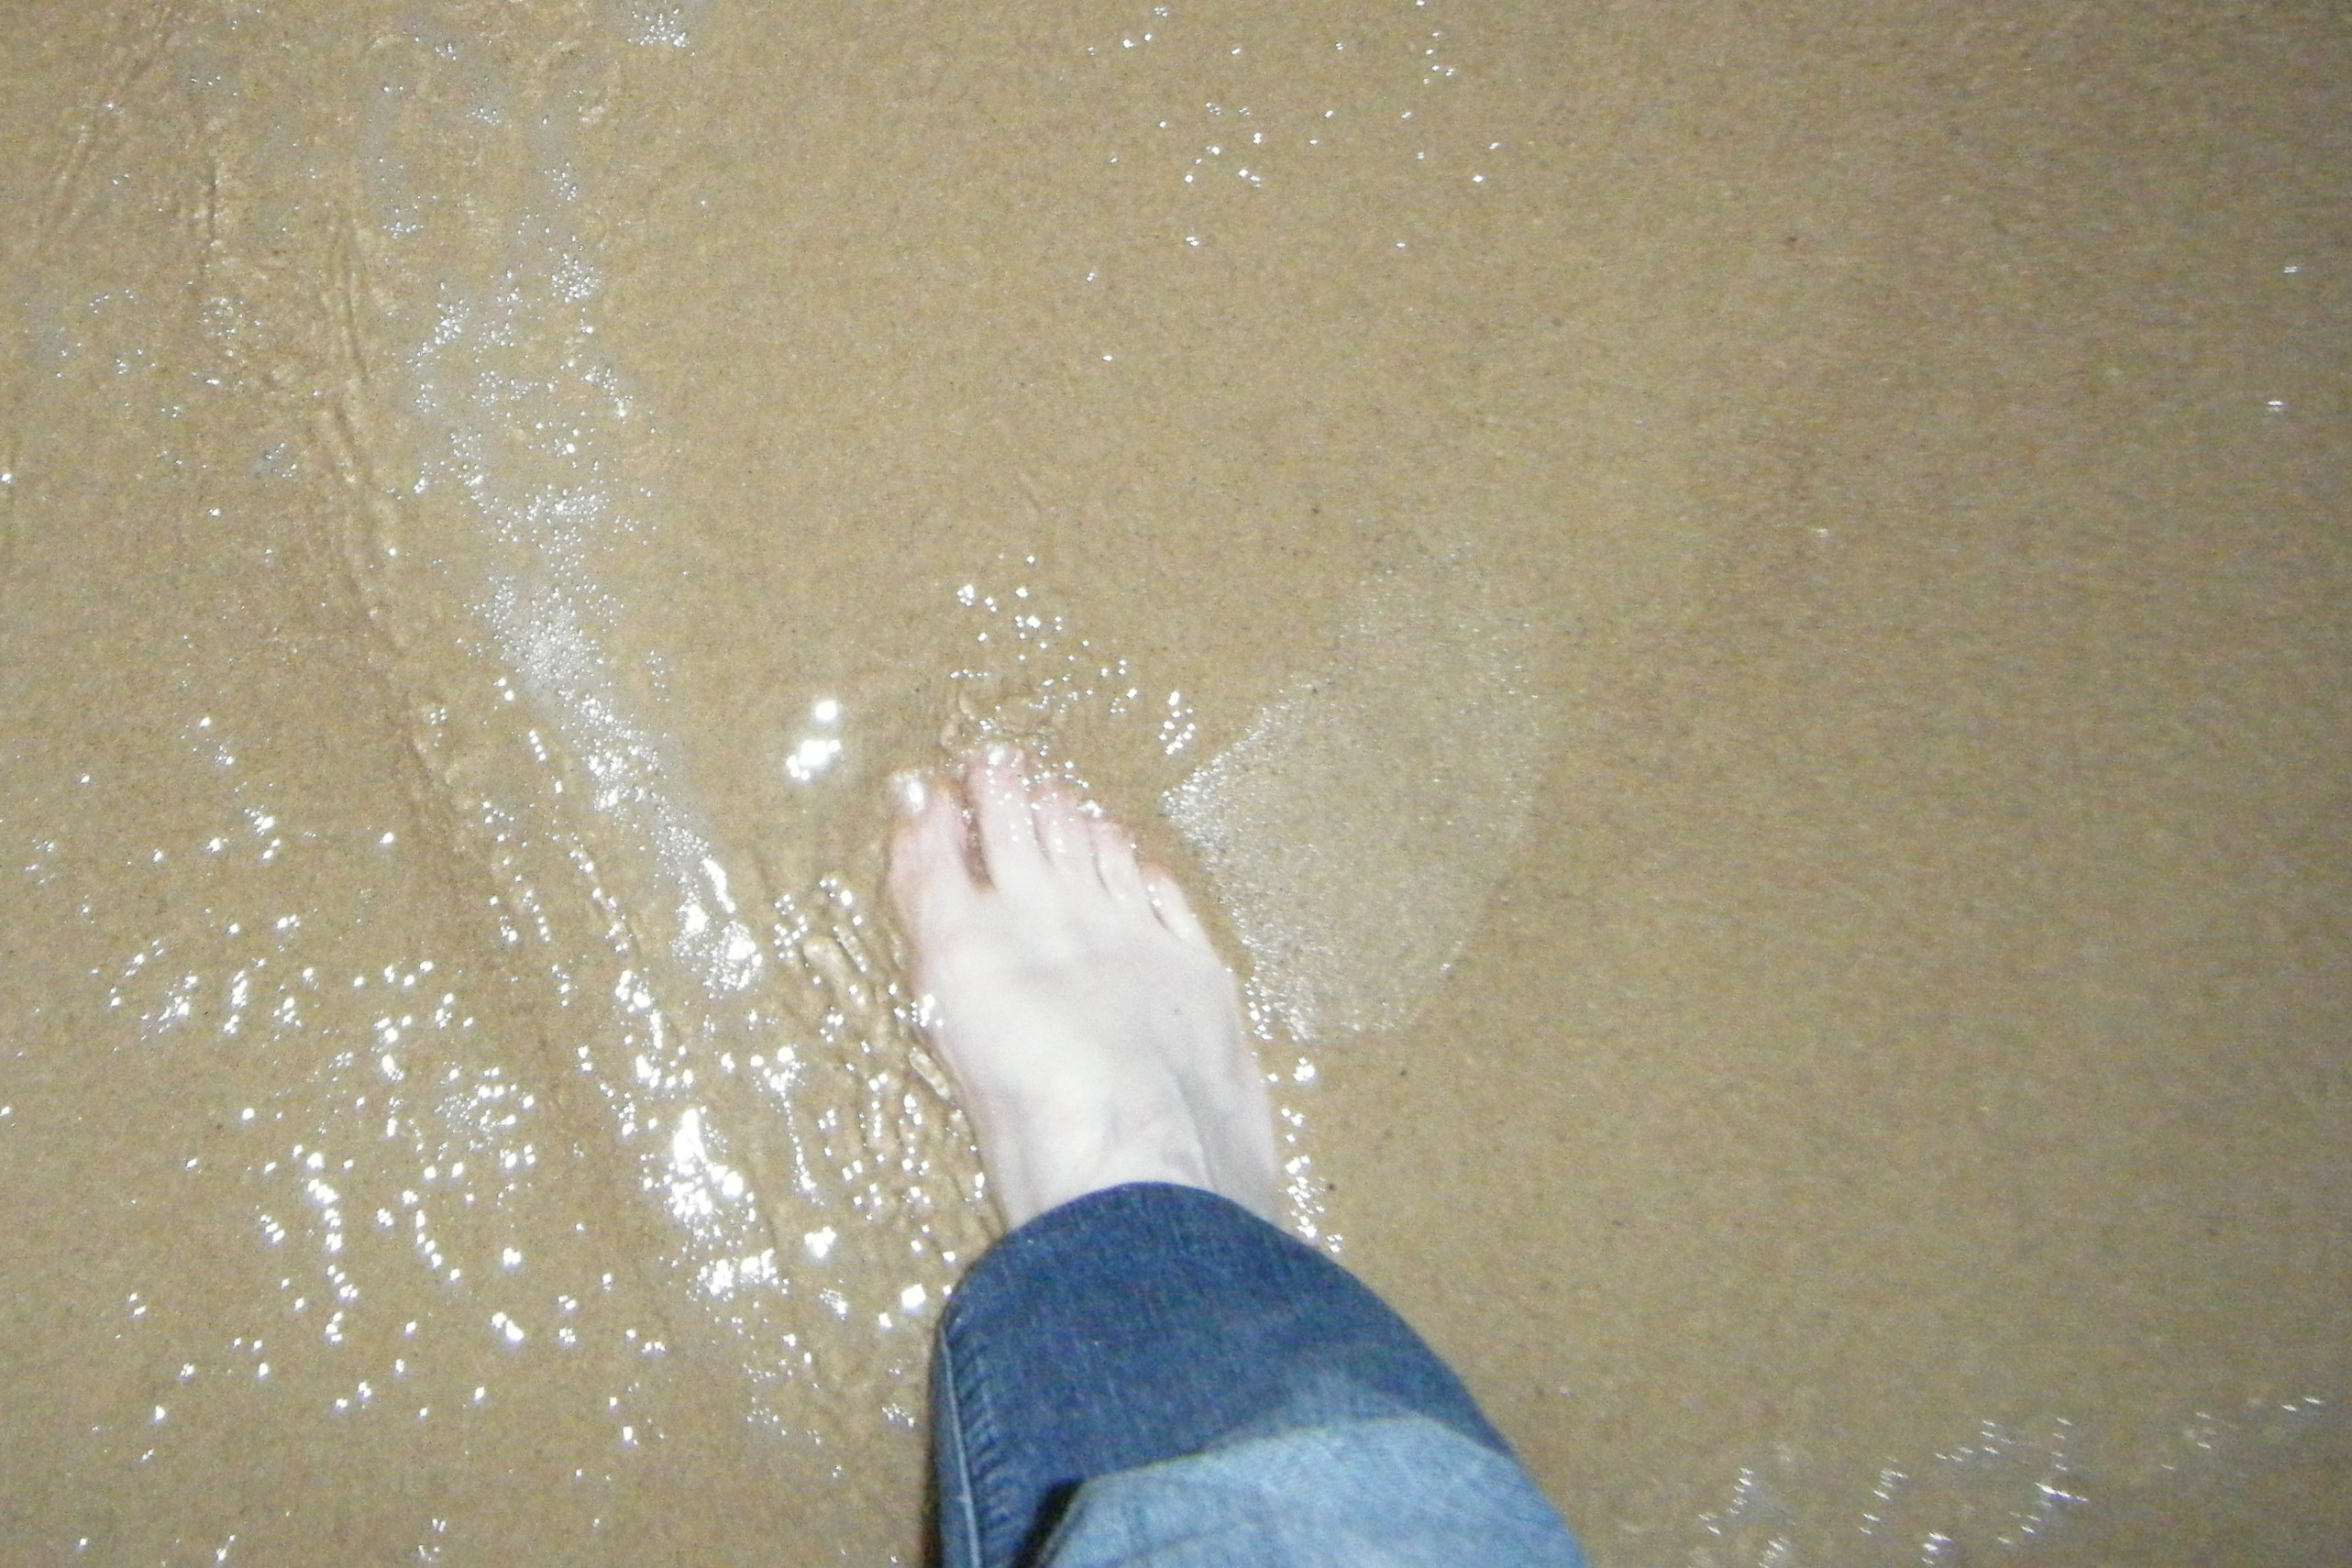 Foot in water.